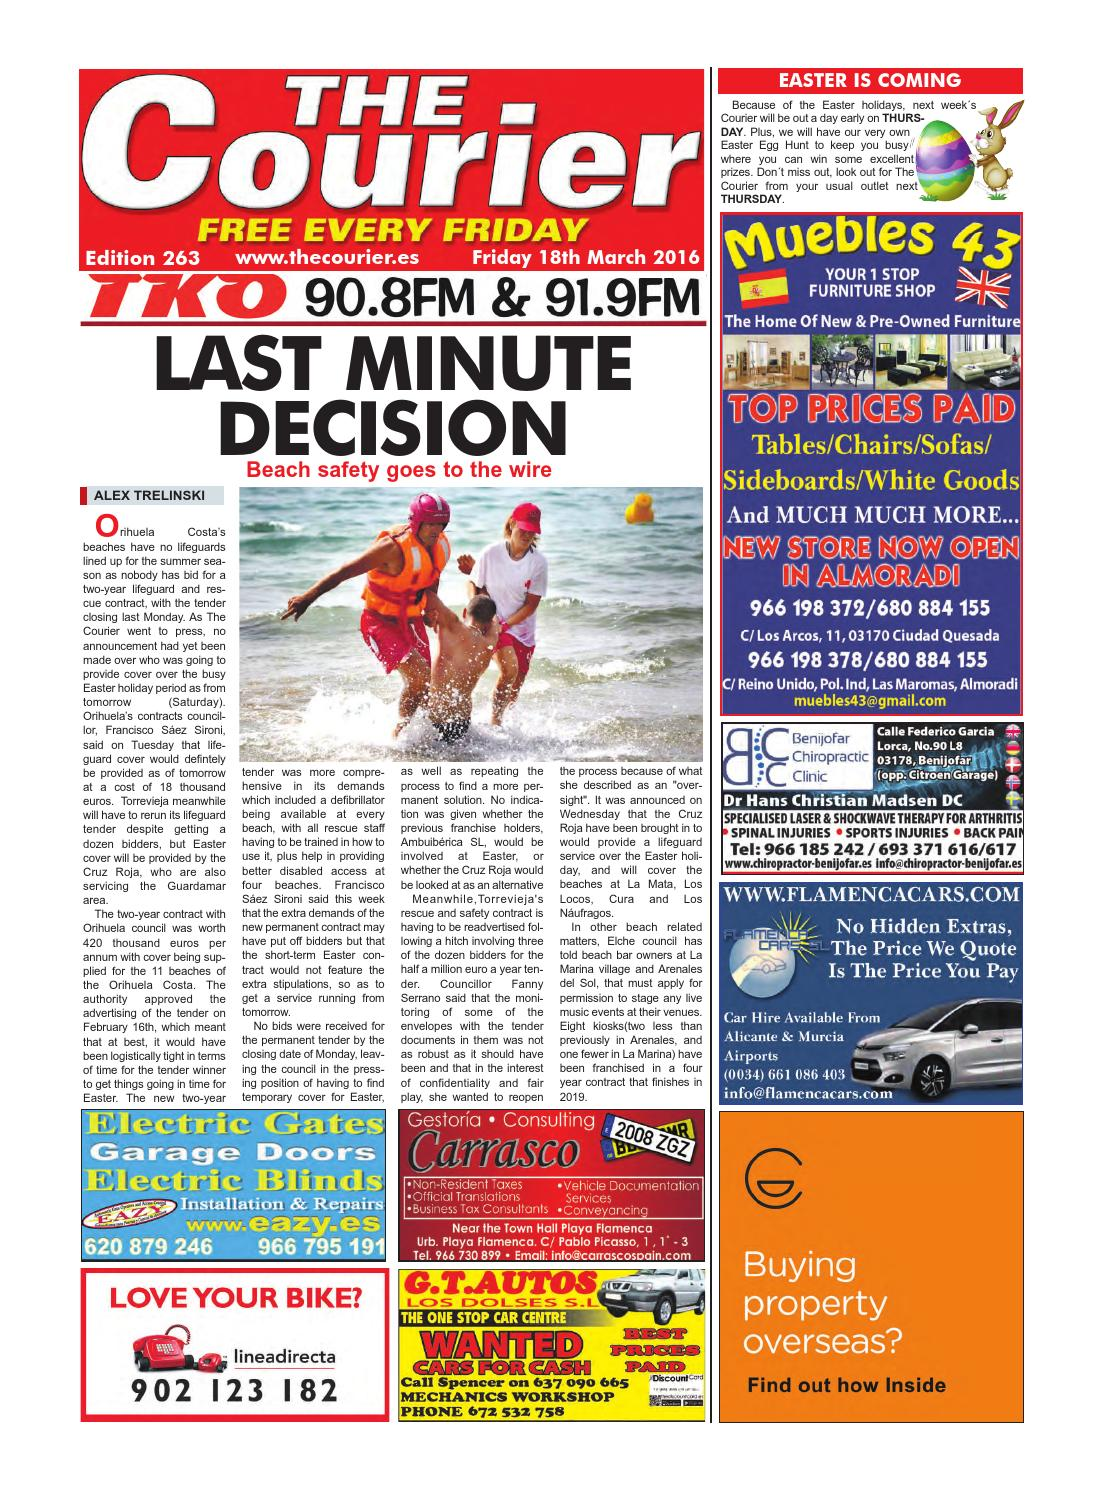 The Courier Edition 263 By The Courier Newspaper Issuu